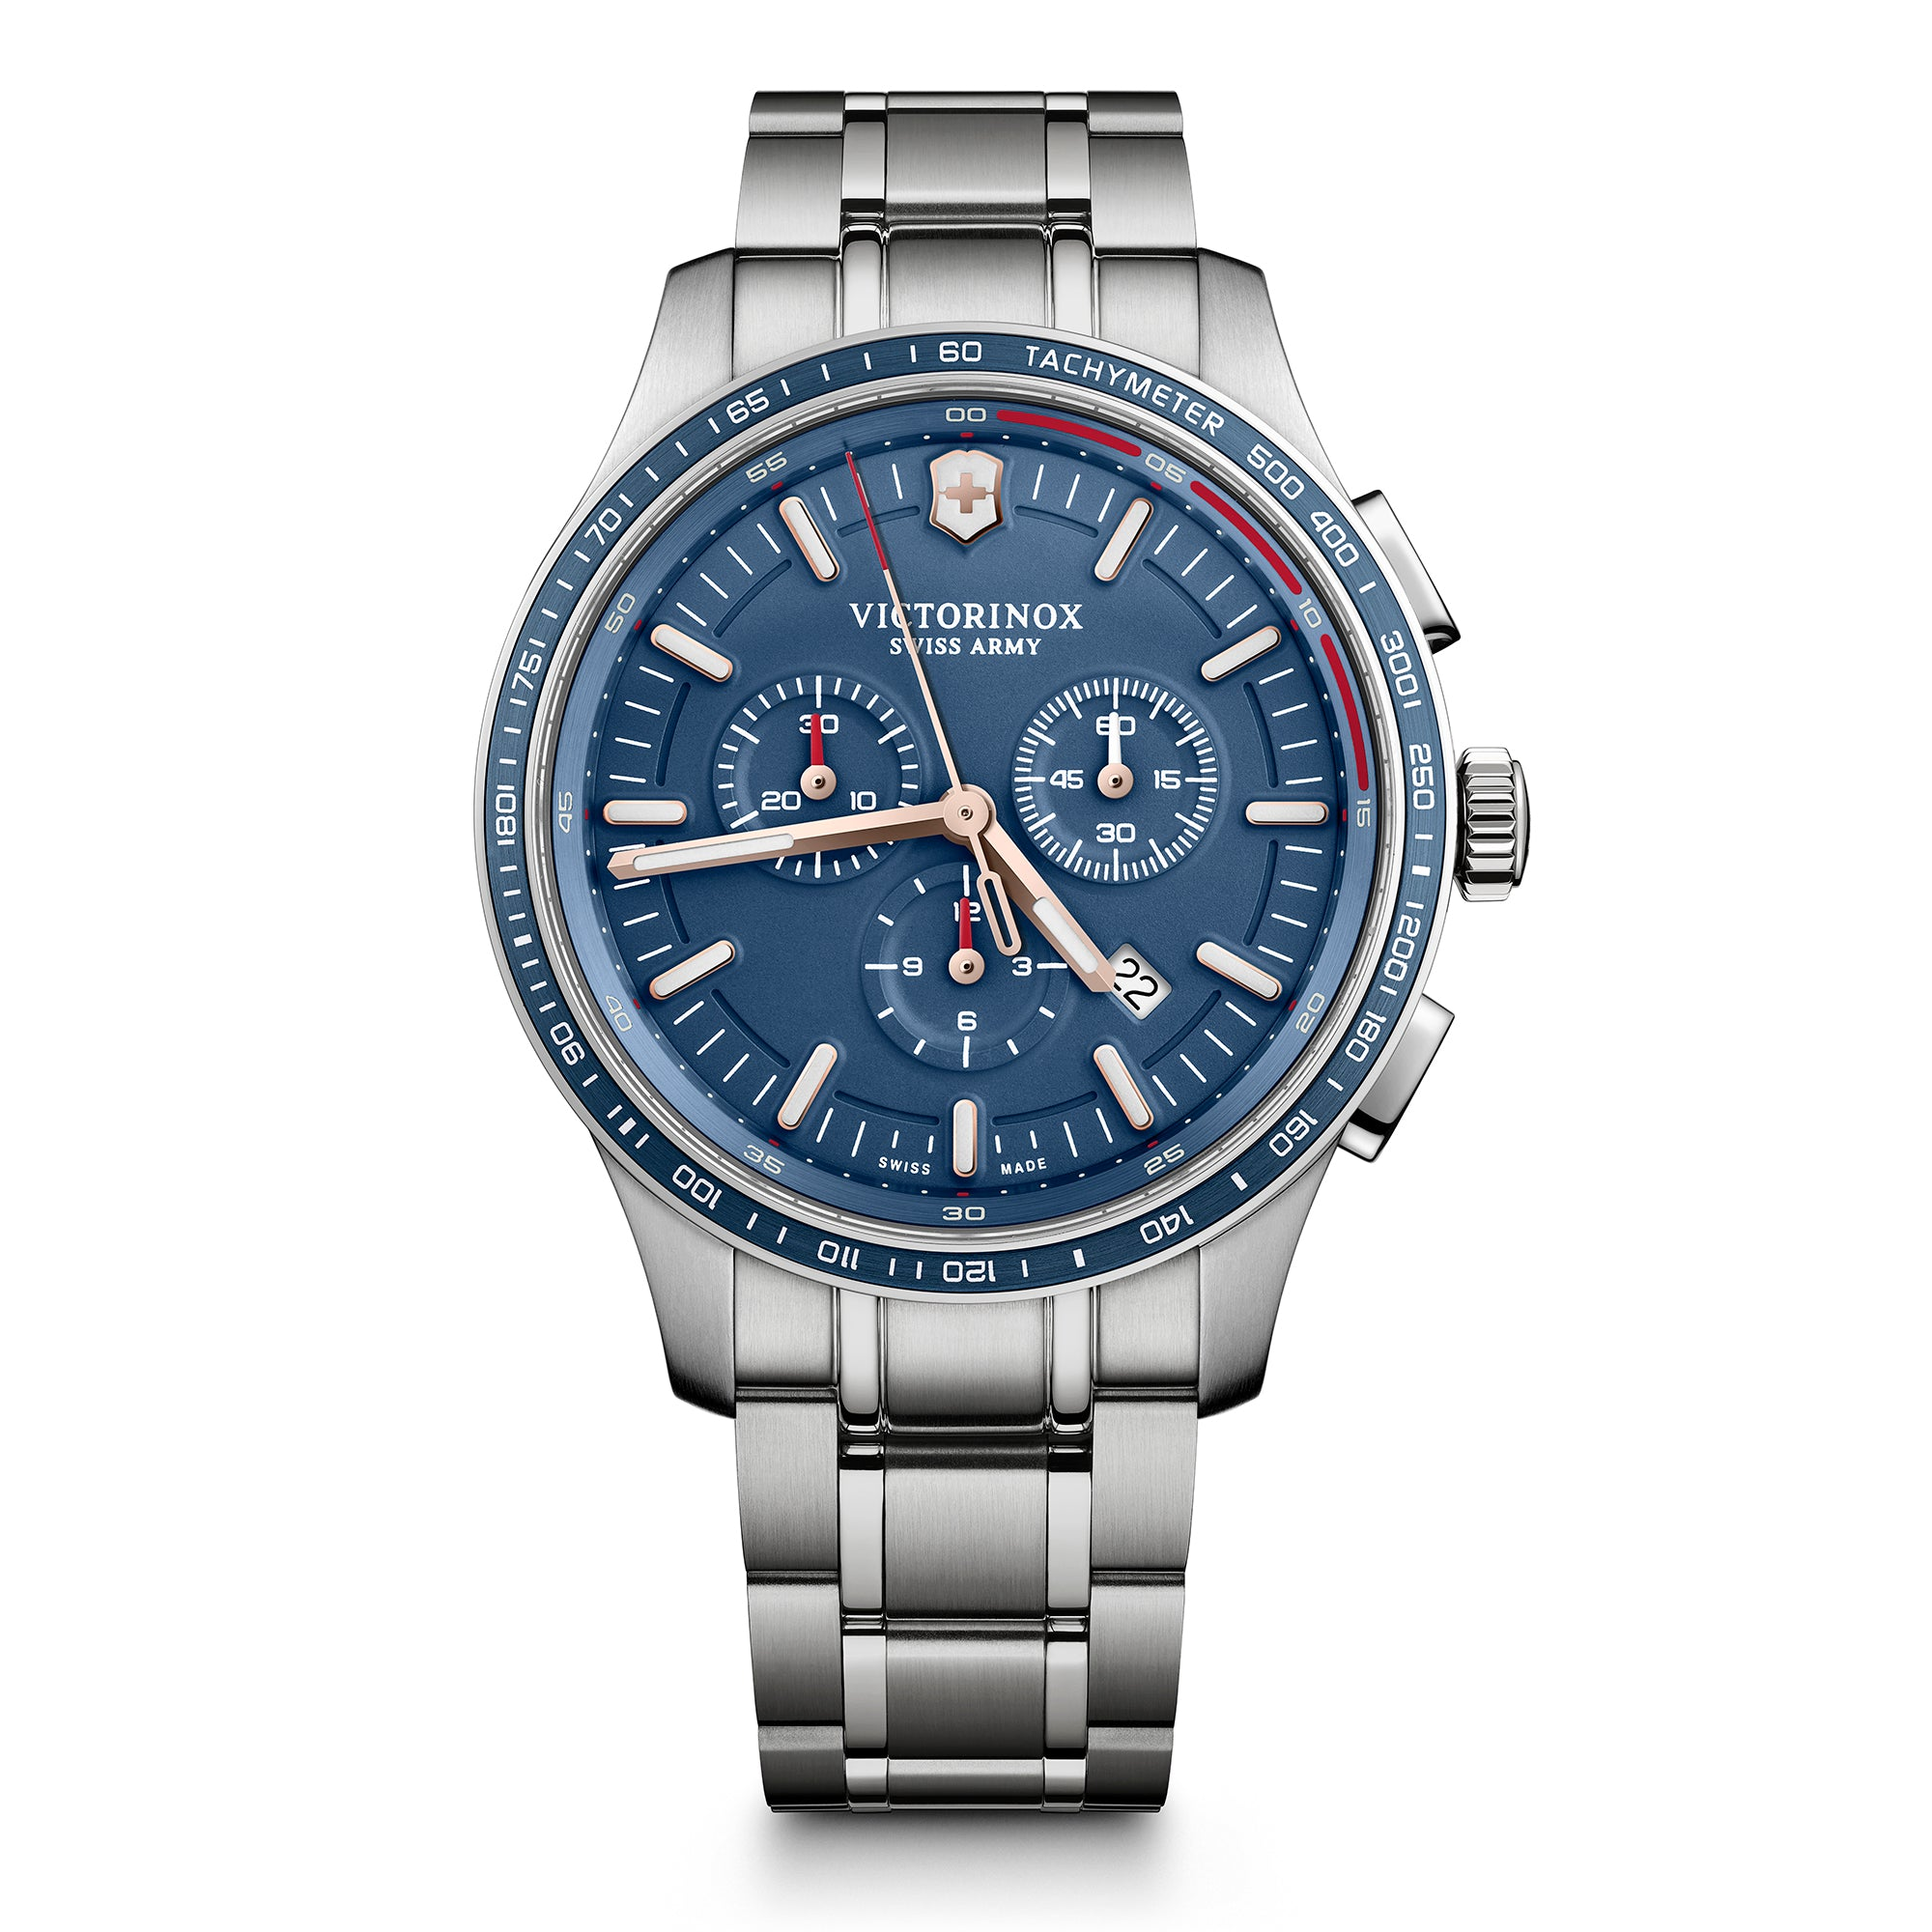 ALLIANCE SPORT CHRONOGRAPH